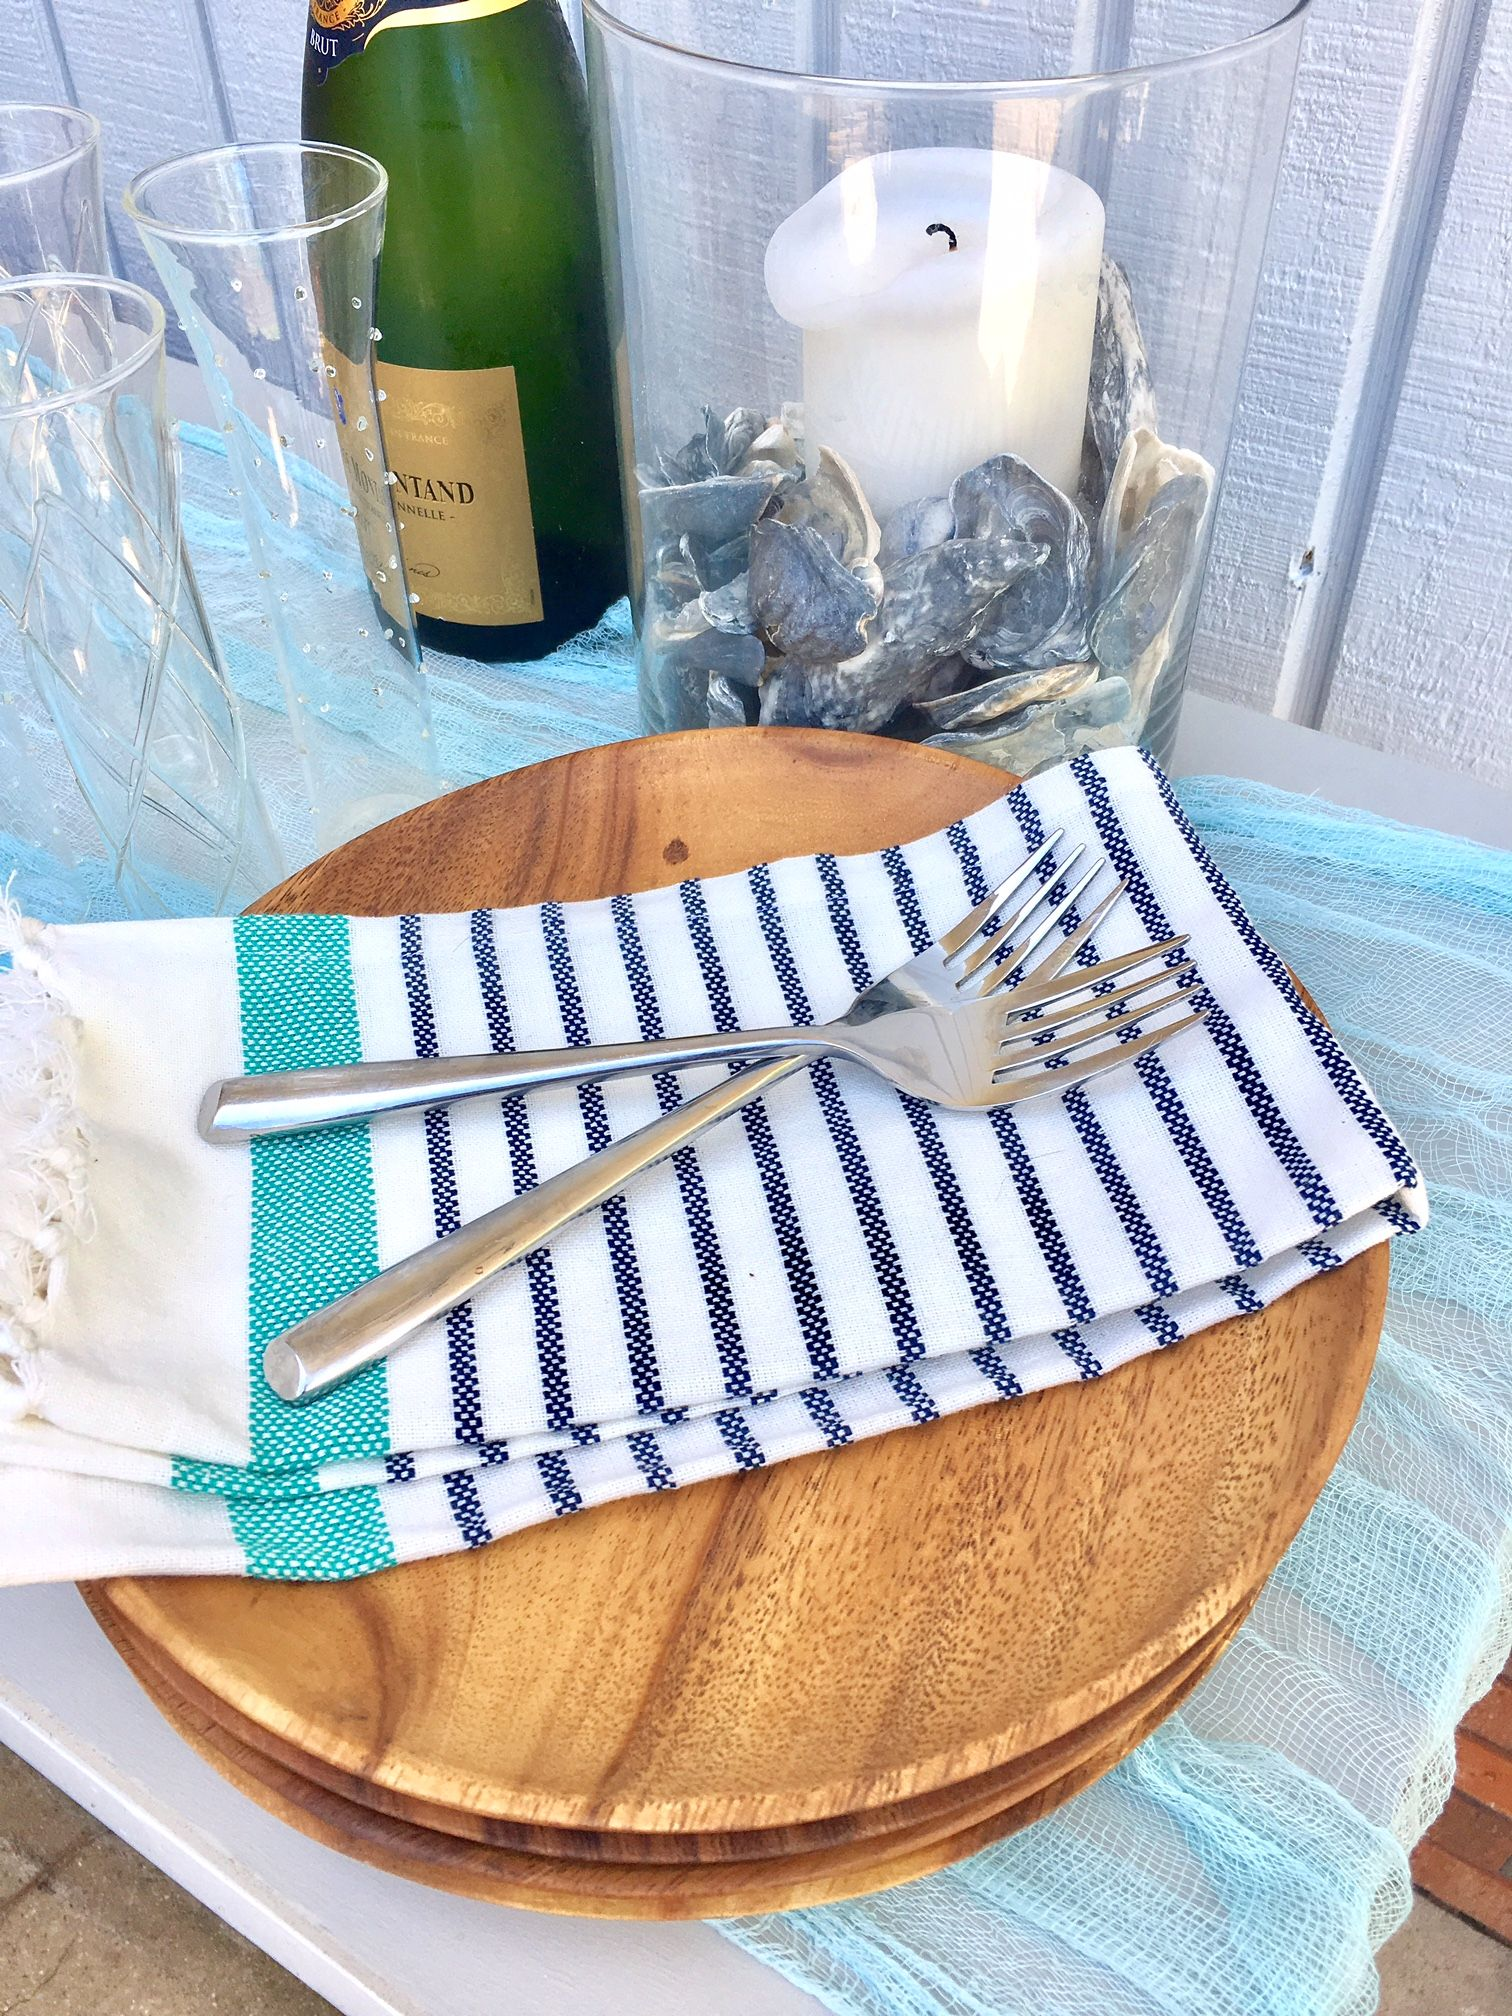 diy hire pro gauze table runners spring wedding accent your focus runner create custom for with this easy step from theidolist battery powered floor lights hampton bay cushions